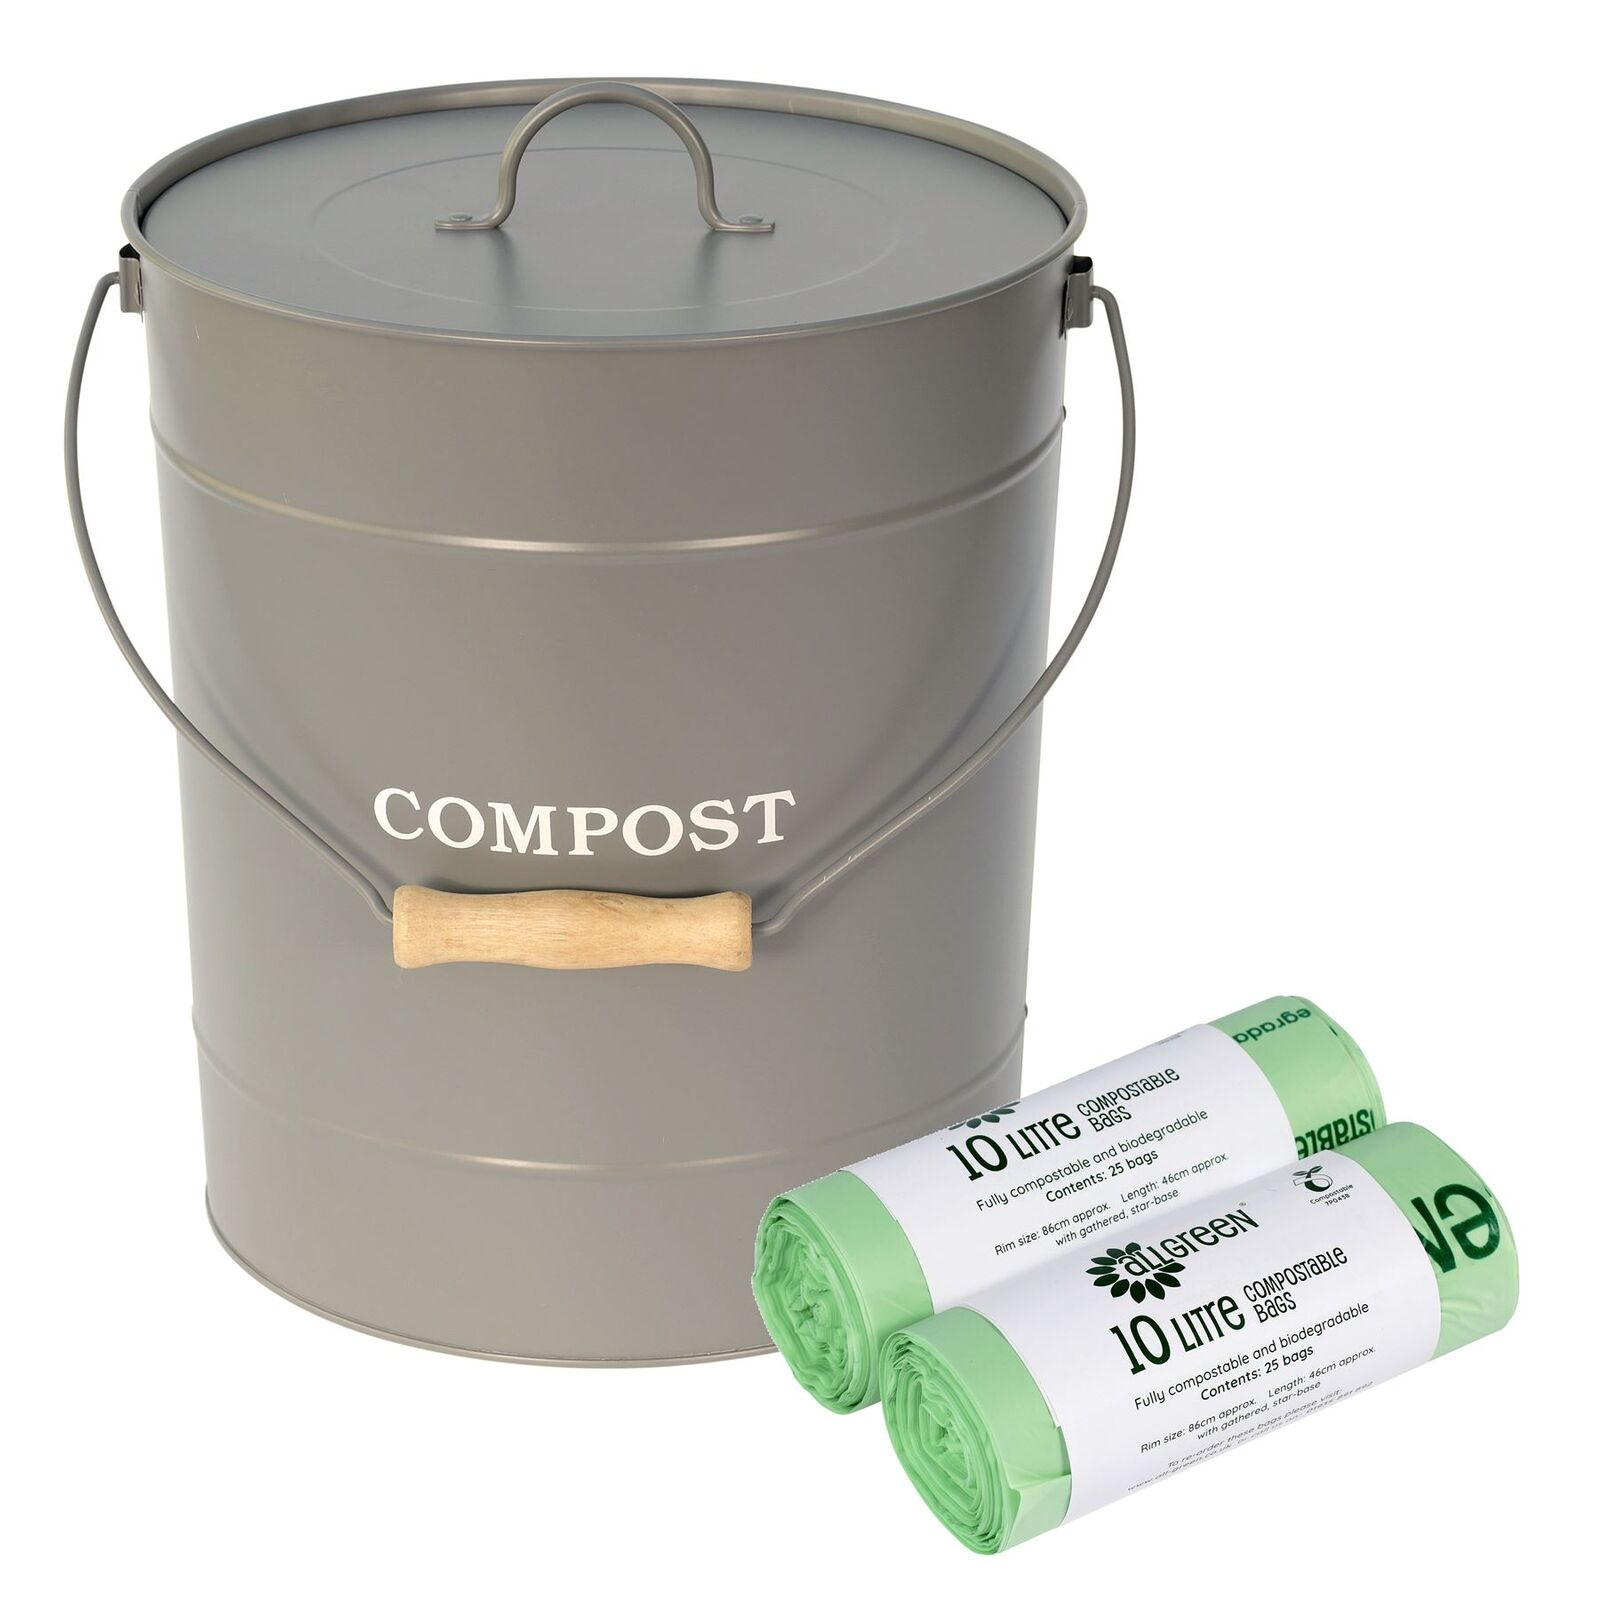 Charcoal grau 10L Compost Caddy Bin for Food Waste&50xCompostable Bags